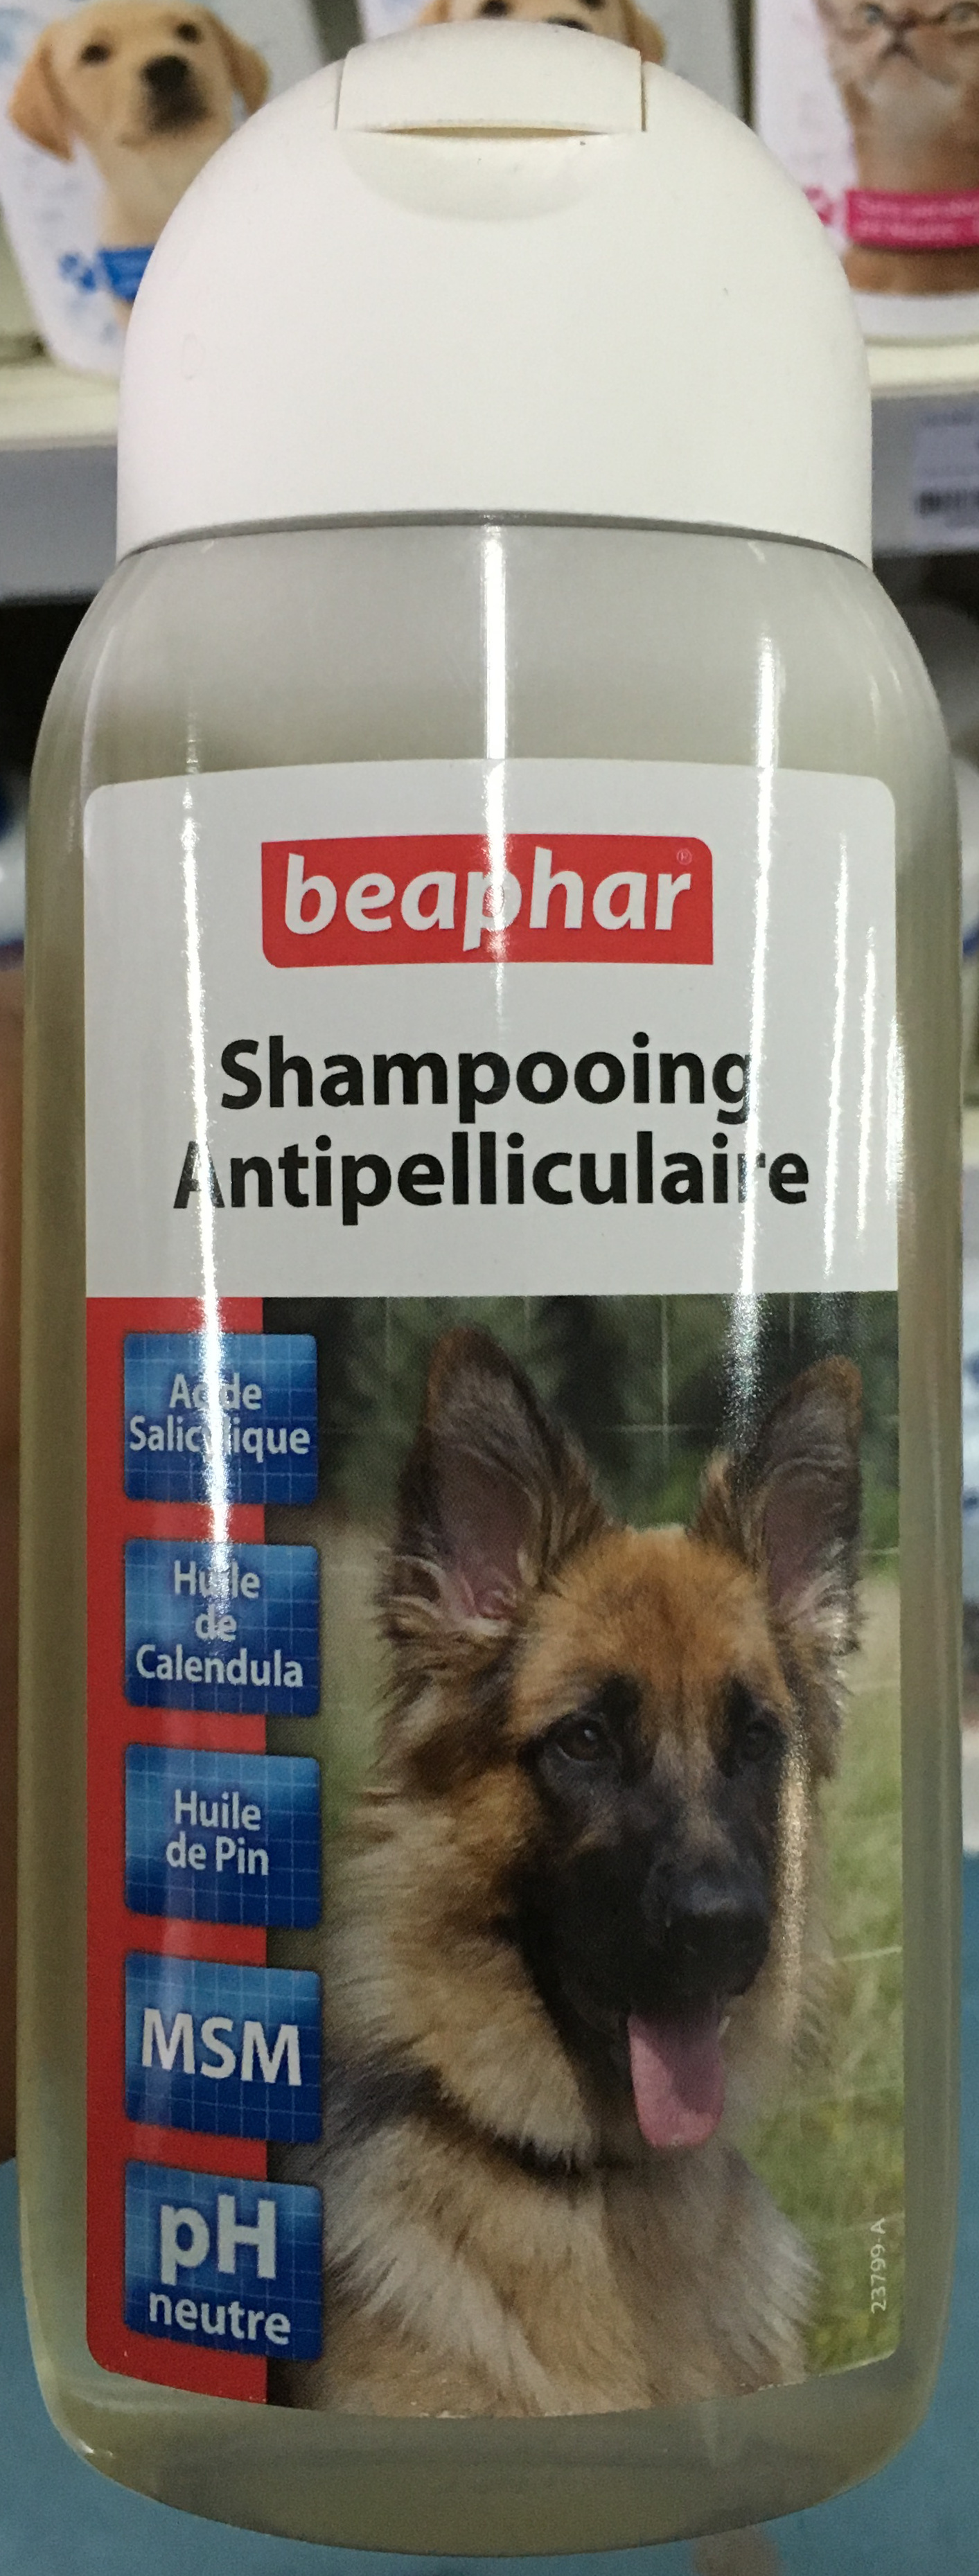 Shampooing antipelliculaire - Product